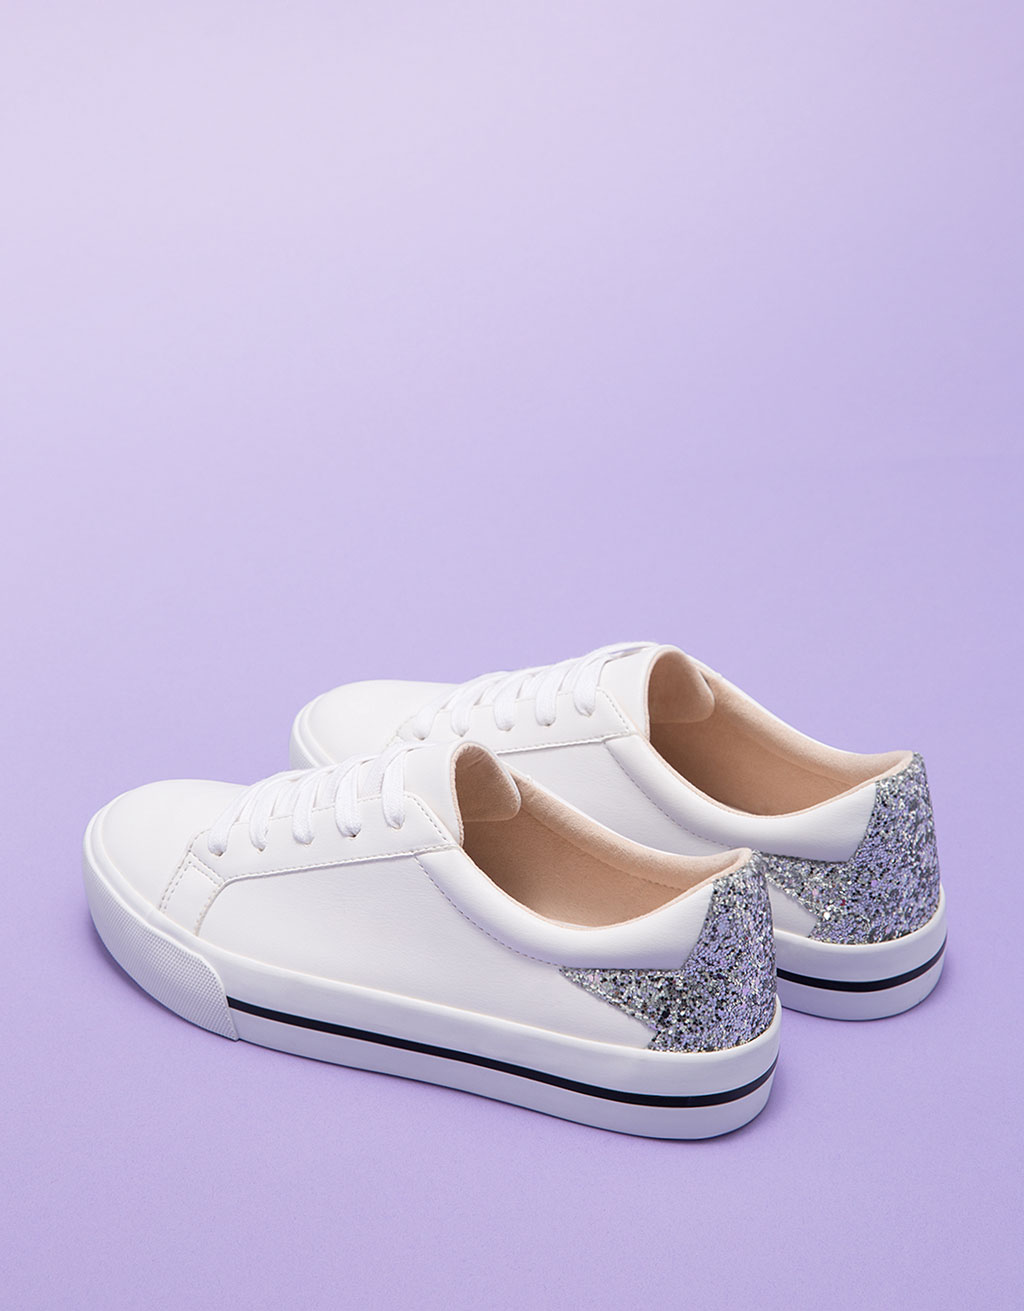 Lace-up shiny star shoes